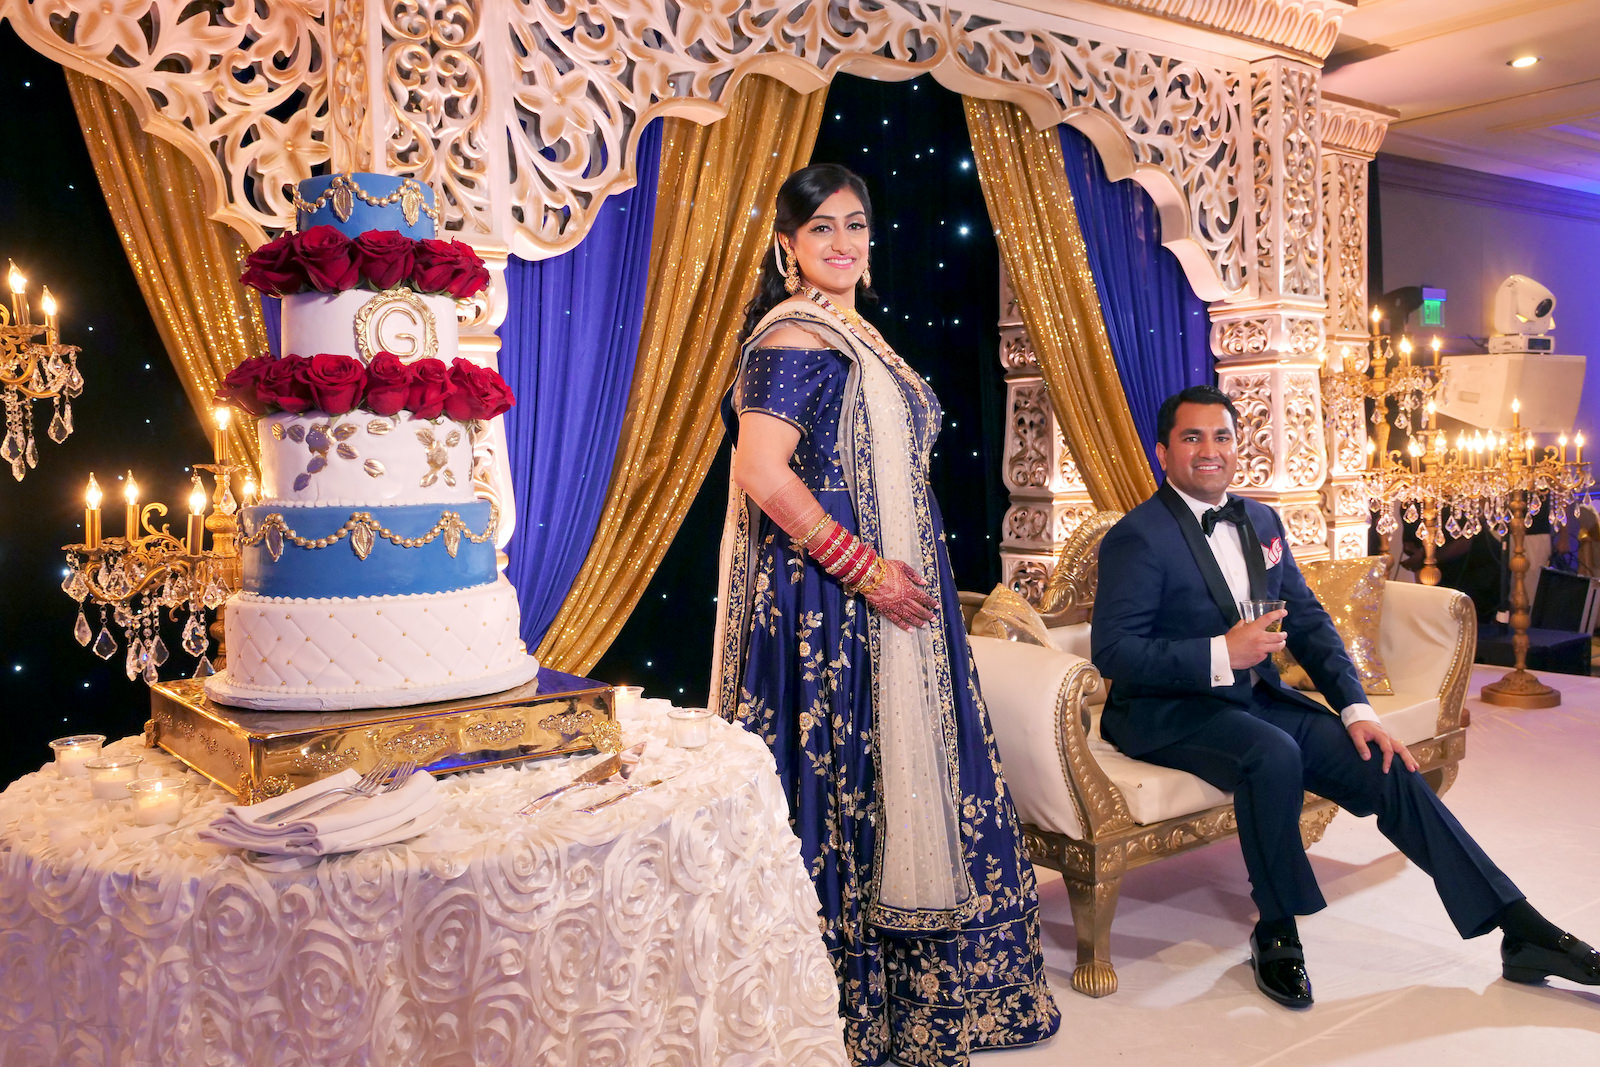 Five Tier Fondant Indian Wedding Cake with Gold Monogram and Quilting accented with Red Roses on a Gold Cake Stand | White Gold and Blue Indian Wedding Mandap Stage with Gold Candelabras | Navy Blue and Gold Indian Wedding Dress | Indian Groom in Classic Navy Blue Tuxedo